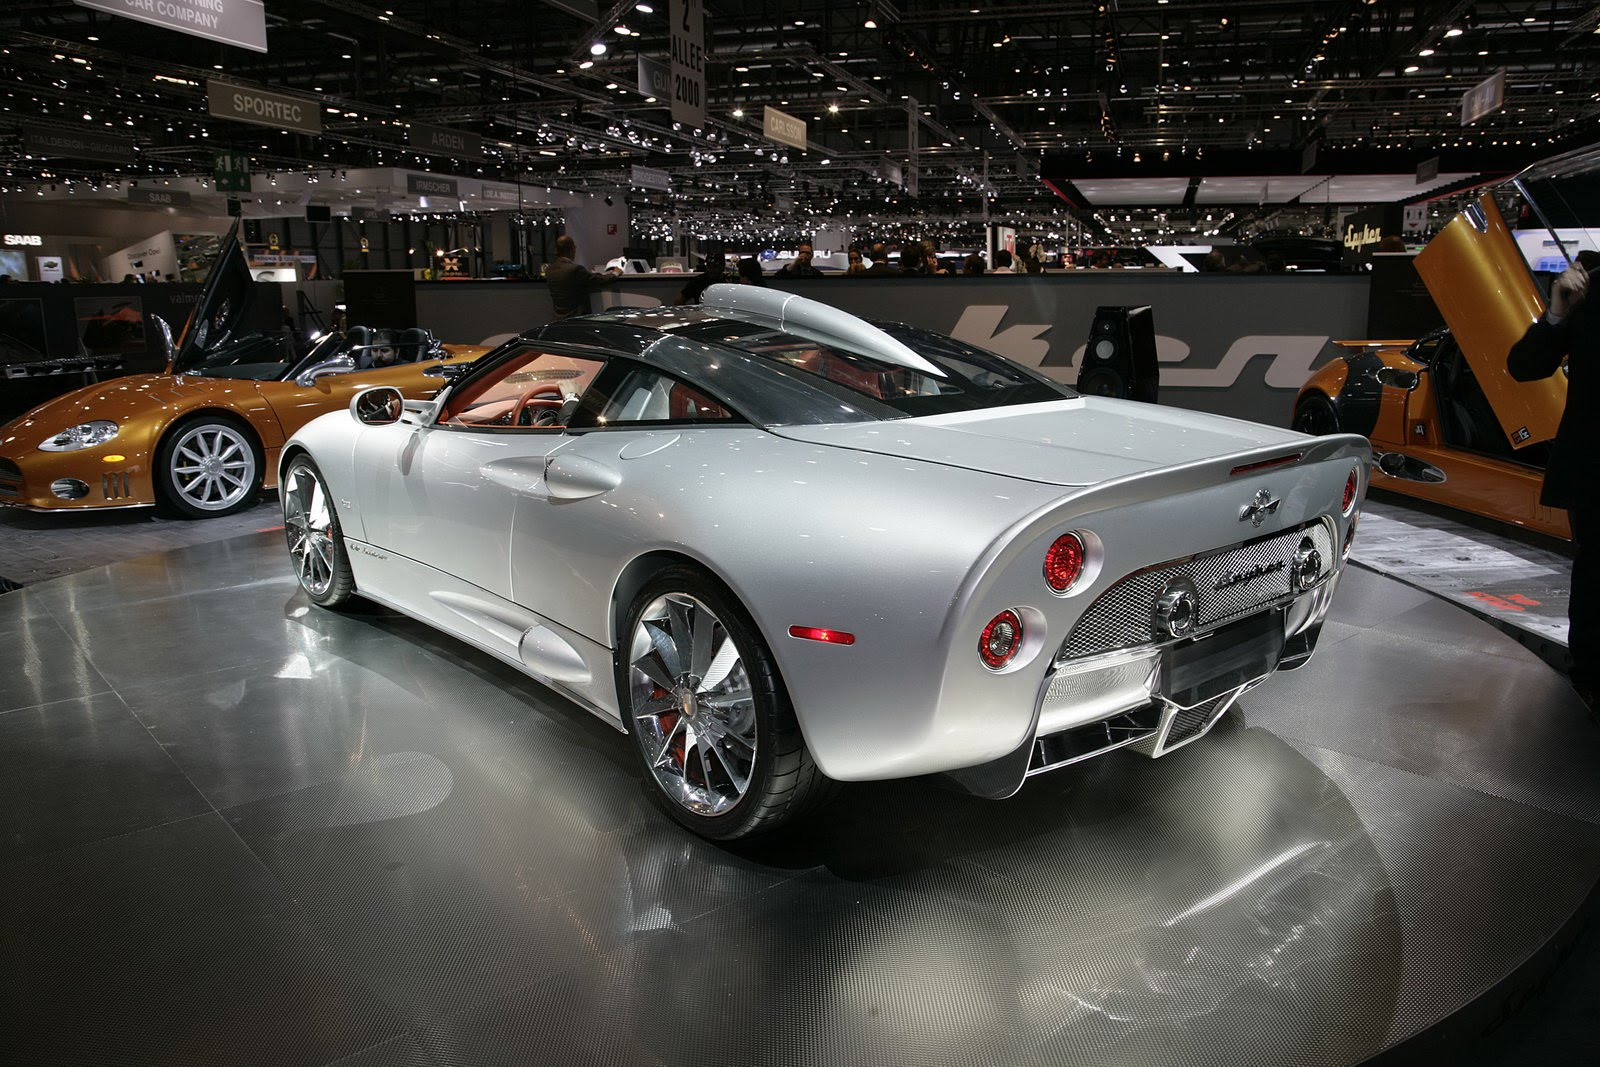 spyker to begin selling sports cars at saab showrooms photos. Black Bedroom Furniture Sets. Home Design Ideas